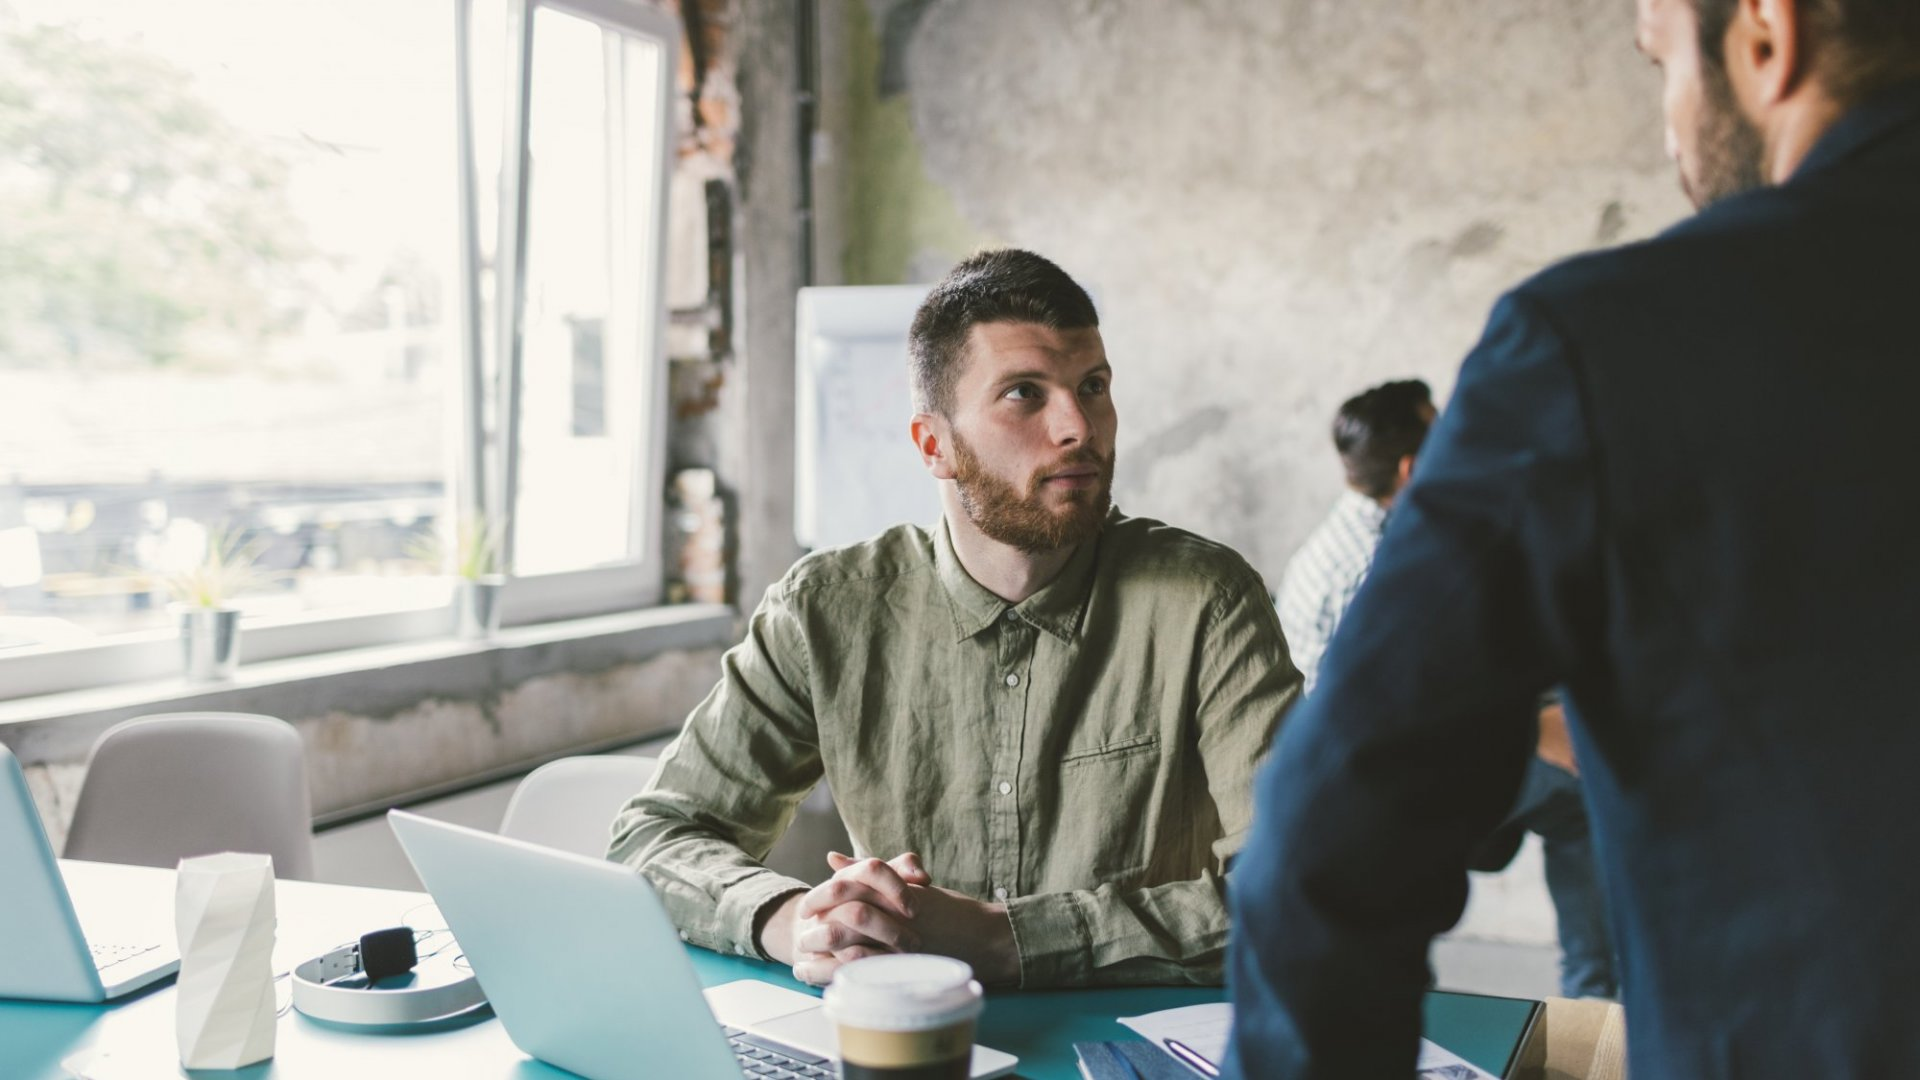 Thinking of Coworking? Be Sure to Check These 8 Things First